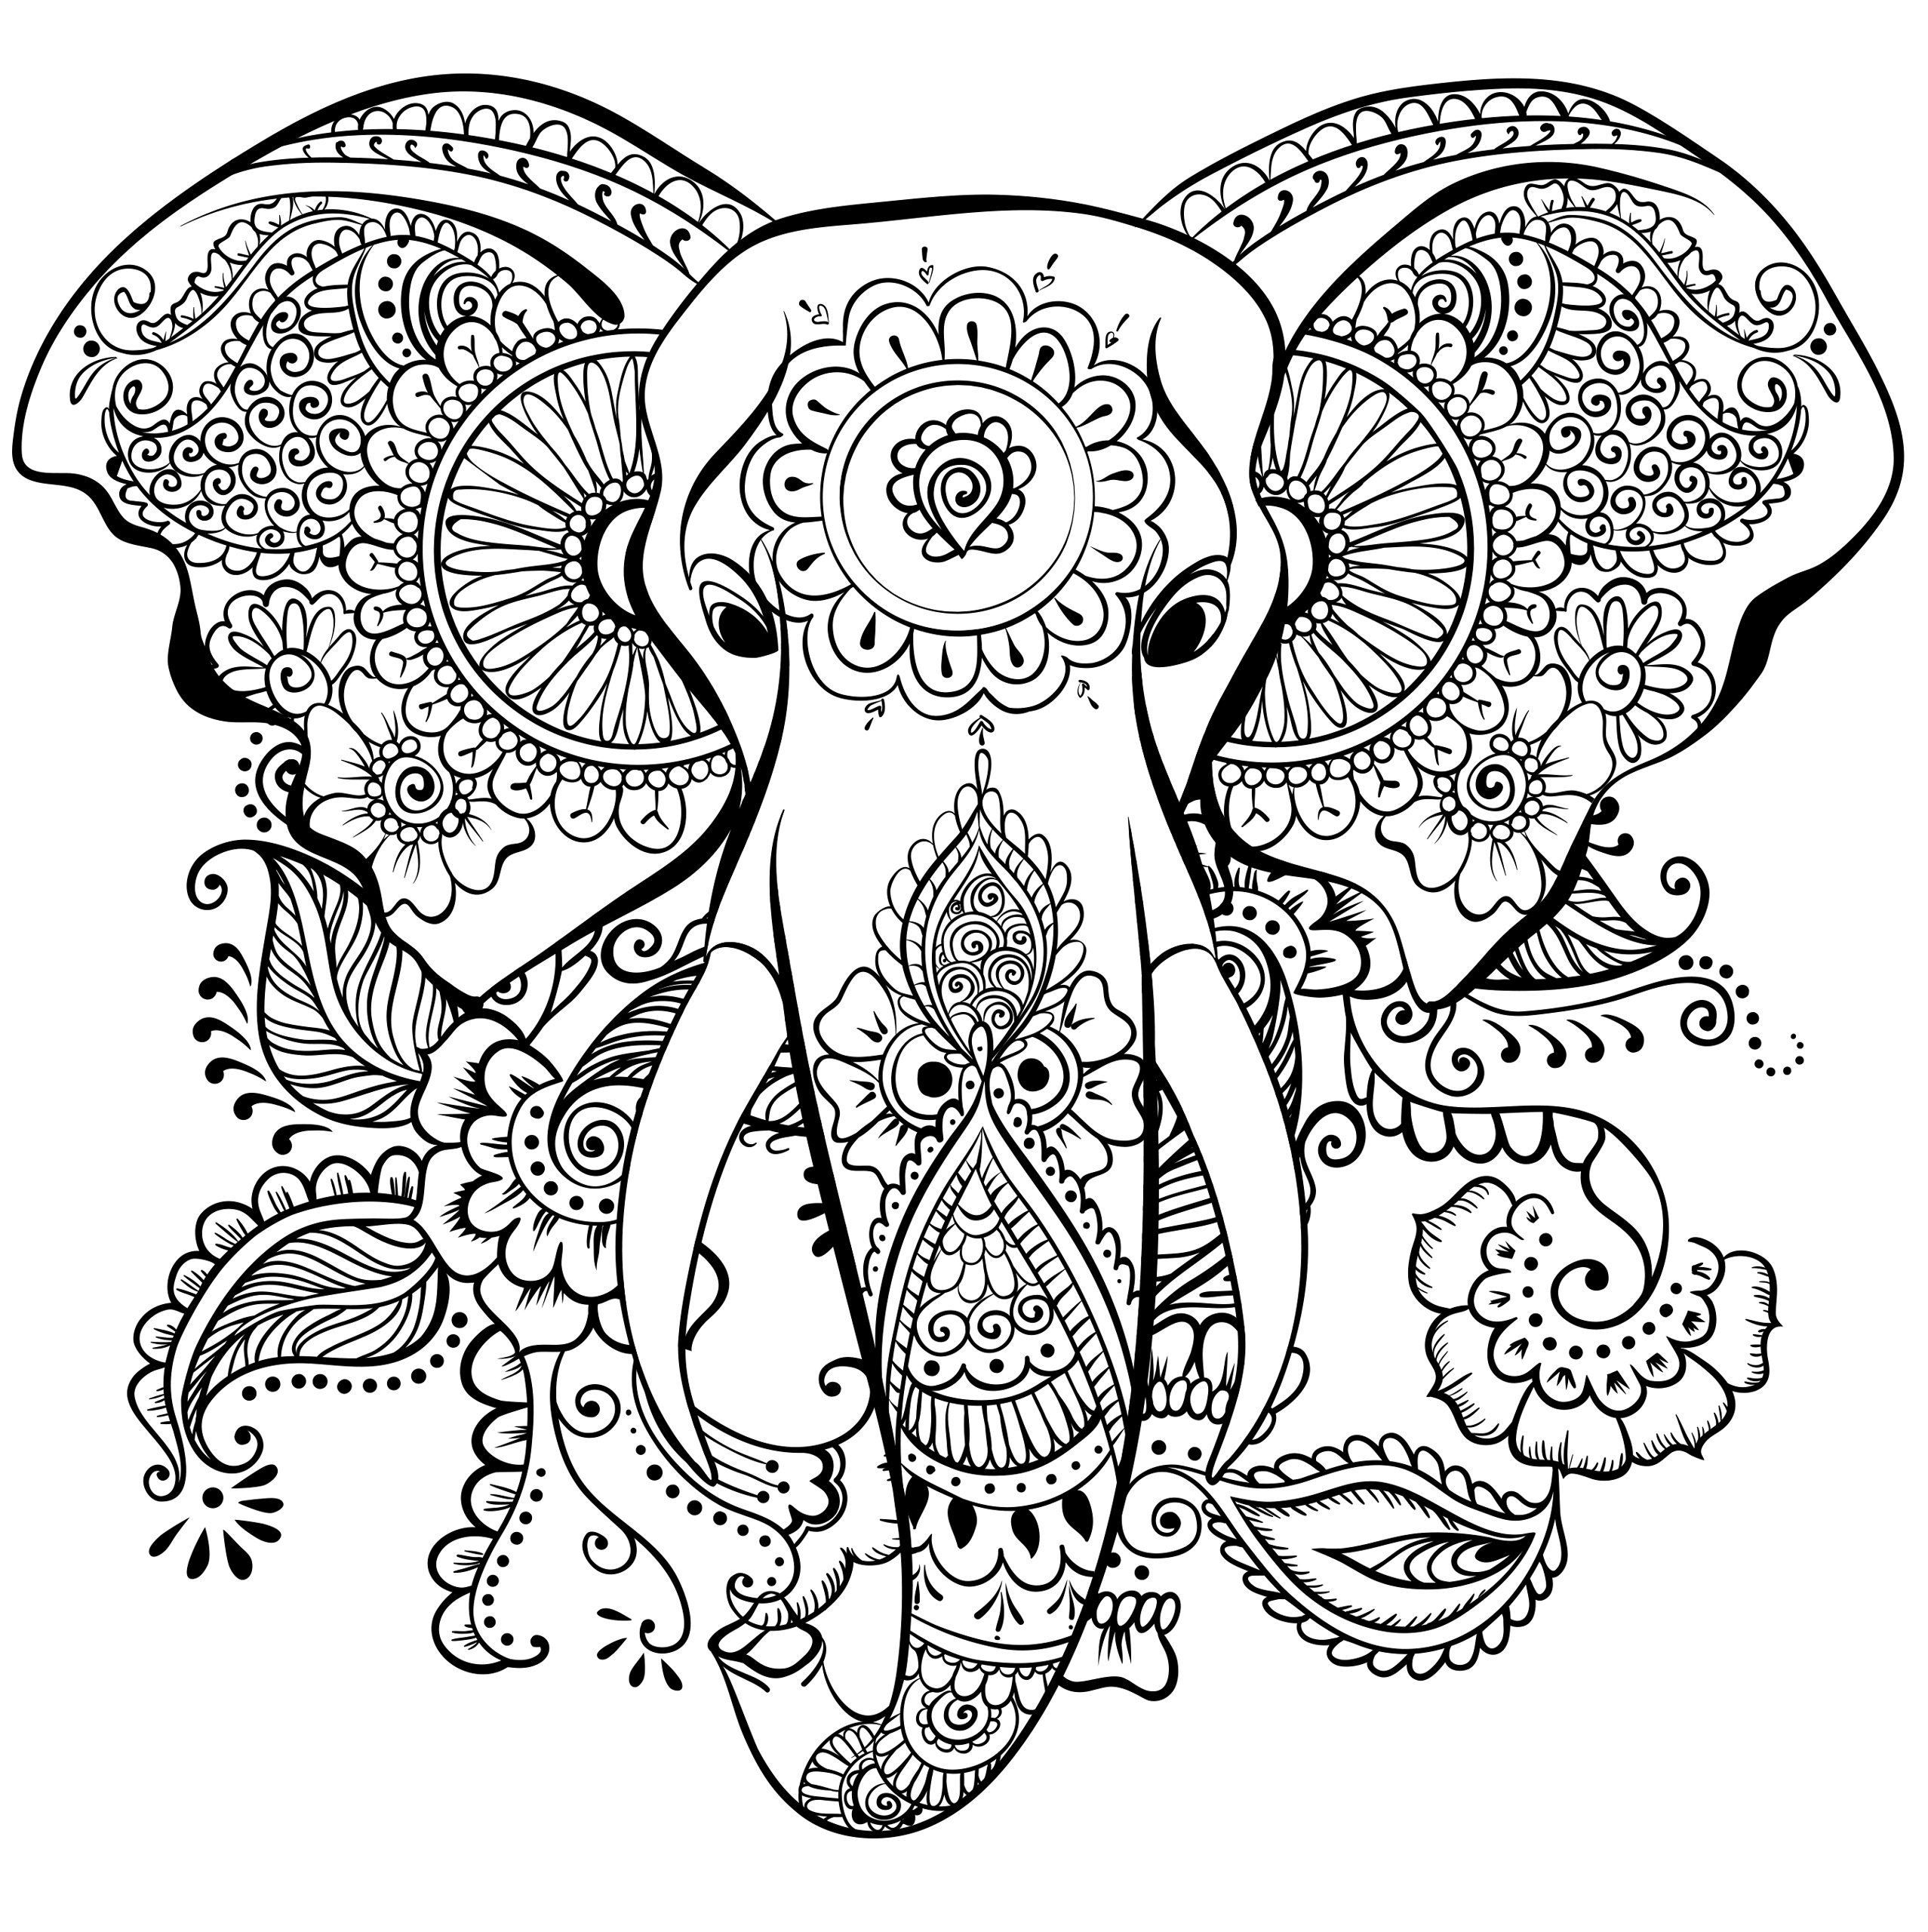 adults coloring pages 20 attractive coloring pages for adults we need fun adults coloring pages